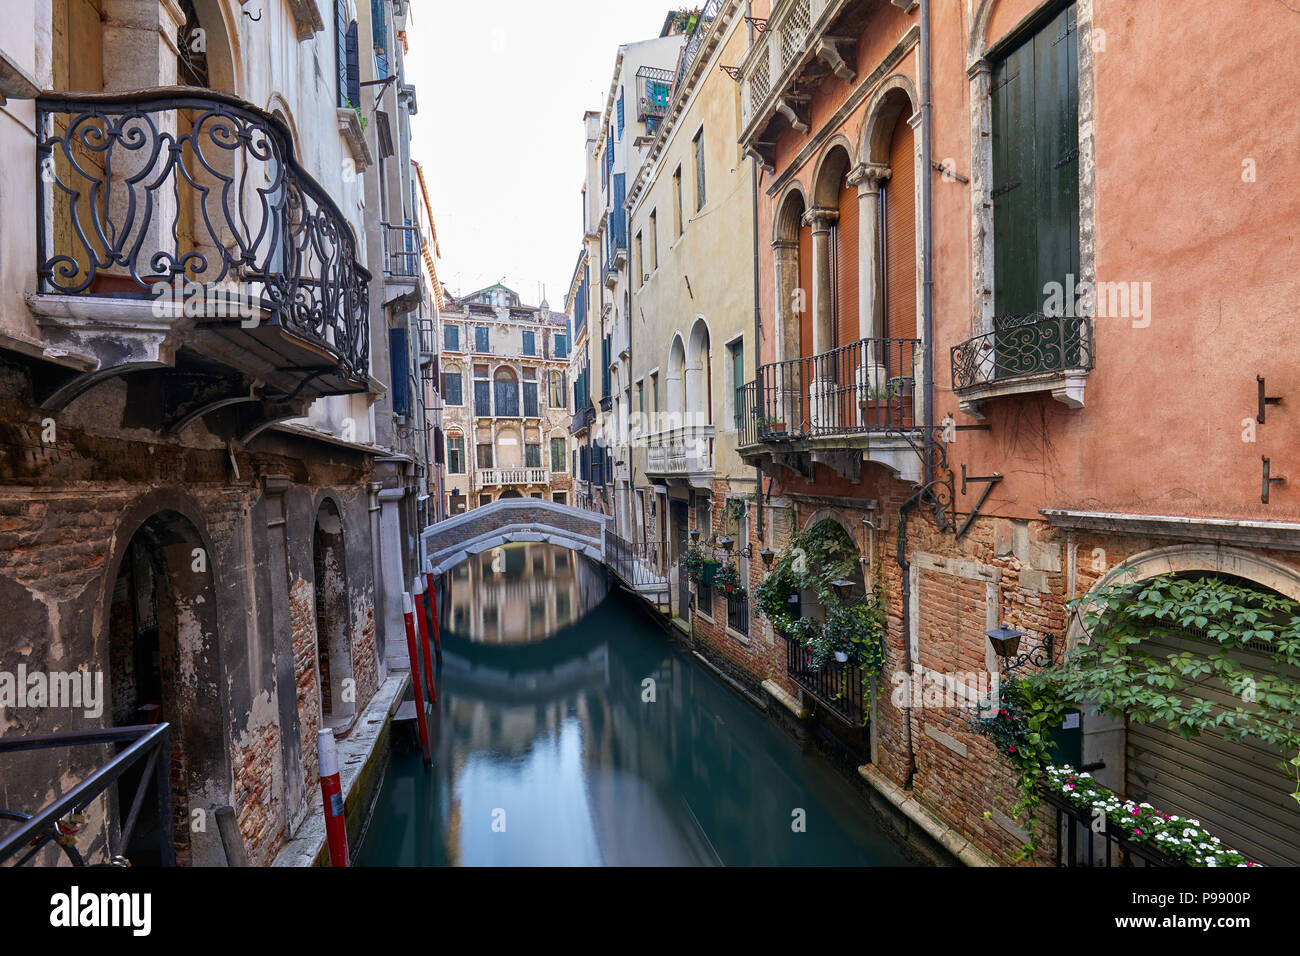 Venice canal with ancient buildings and houses facades in Italy - Stock Image